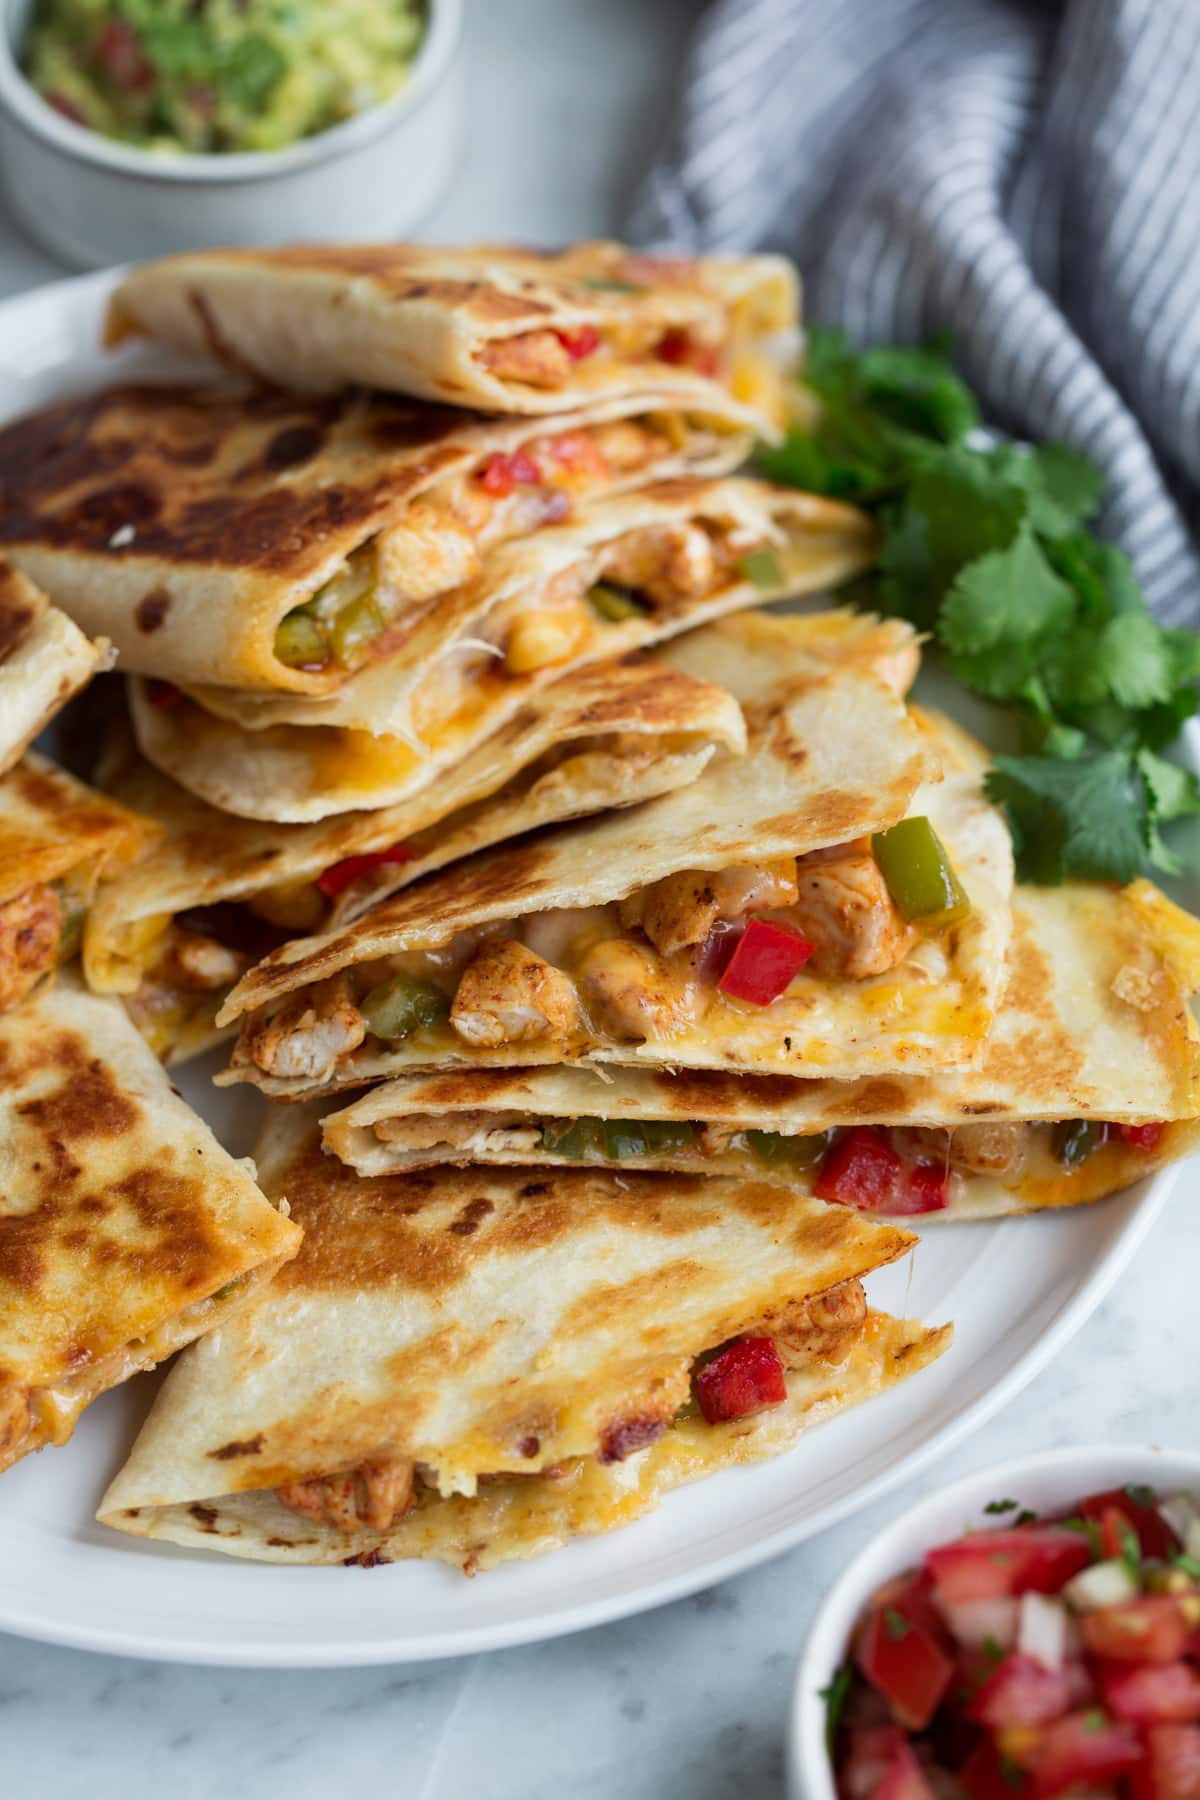 Quesadillas on a plate served with guacamole and salsa.